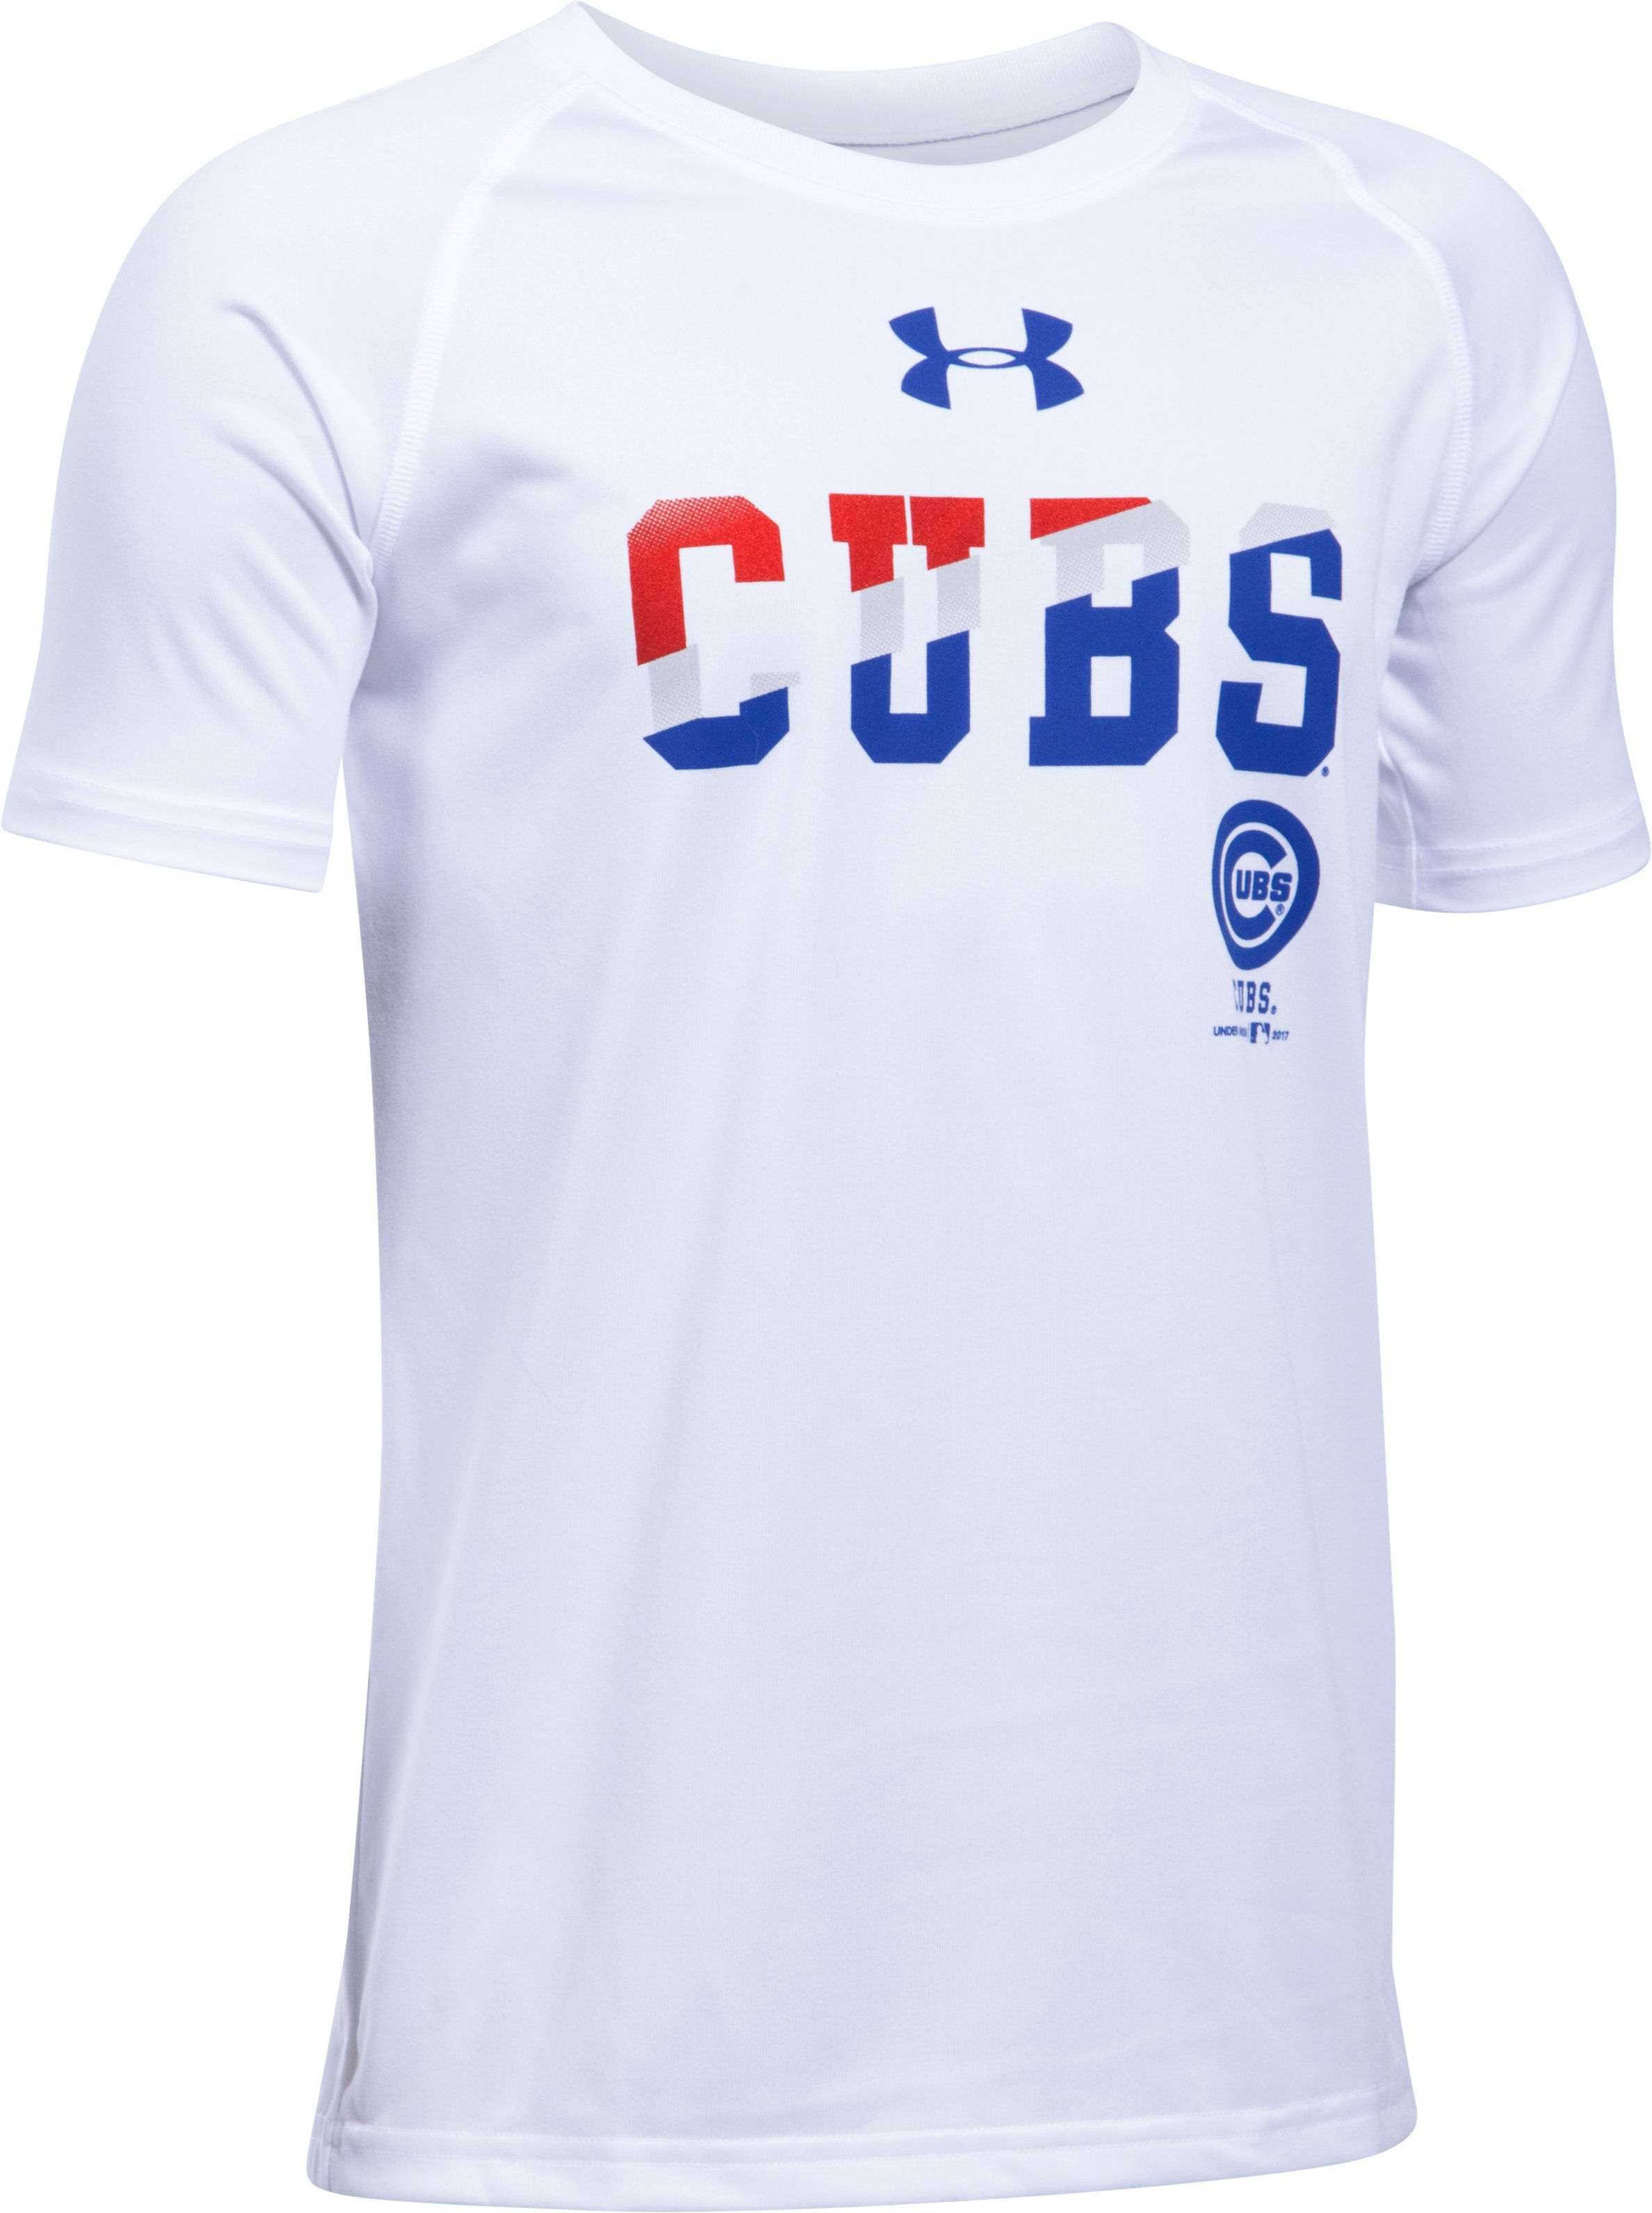 Boys' Chicago Cubs 4th Of July T-Shirt, White, undefined